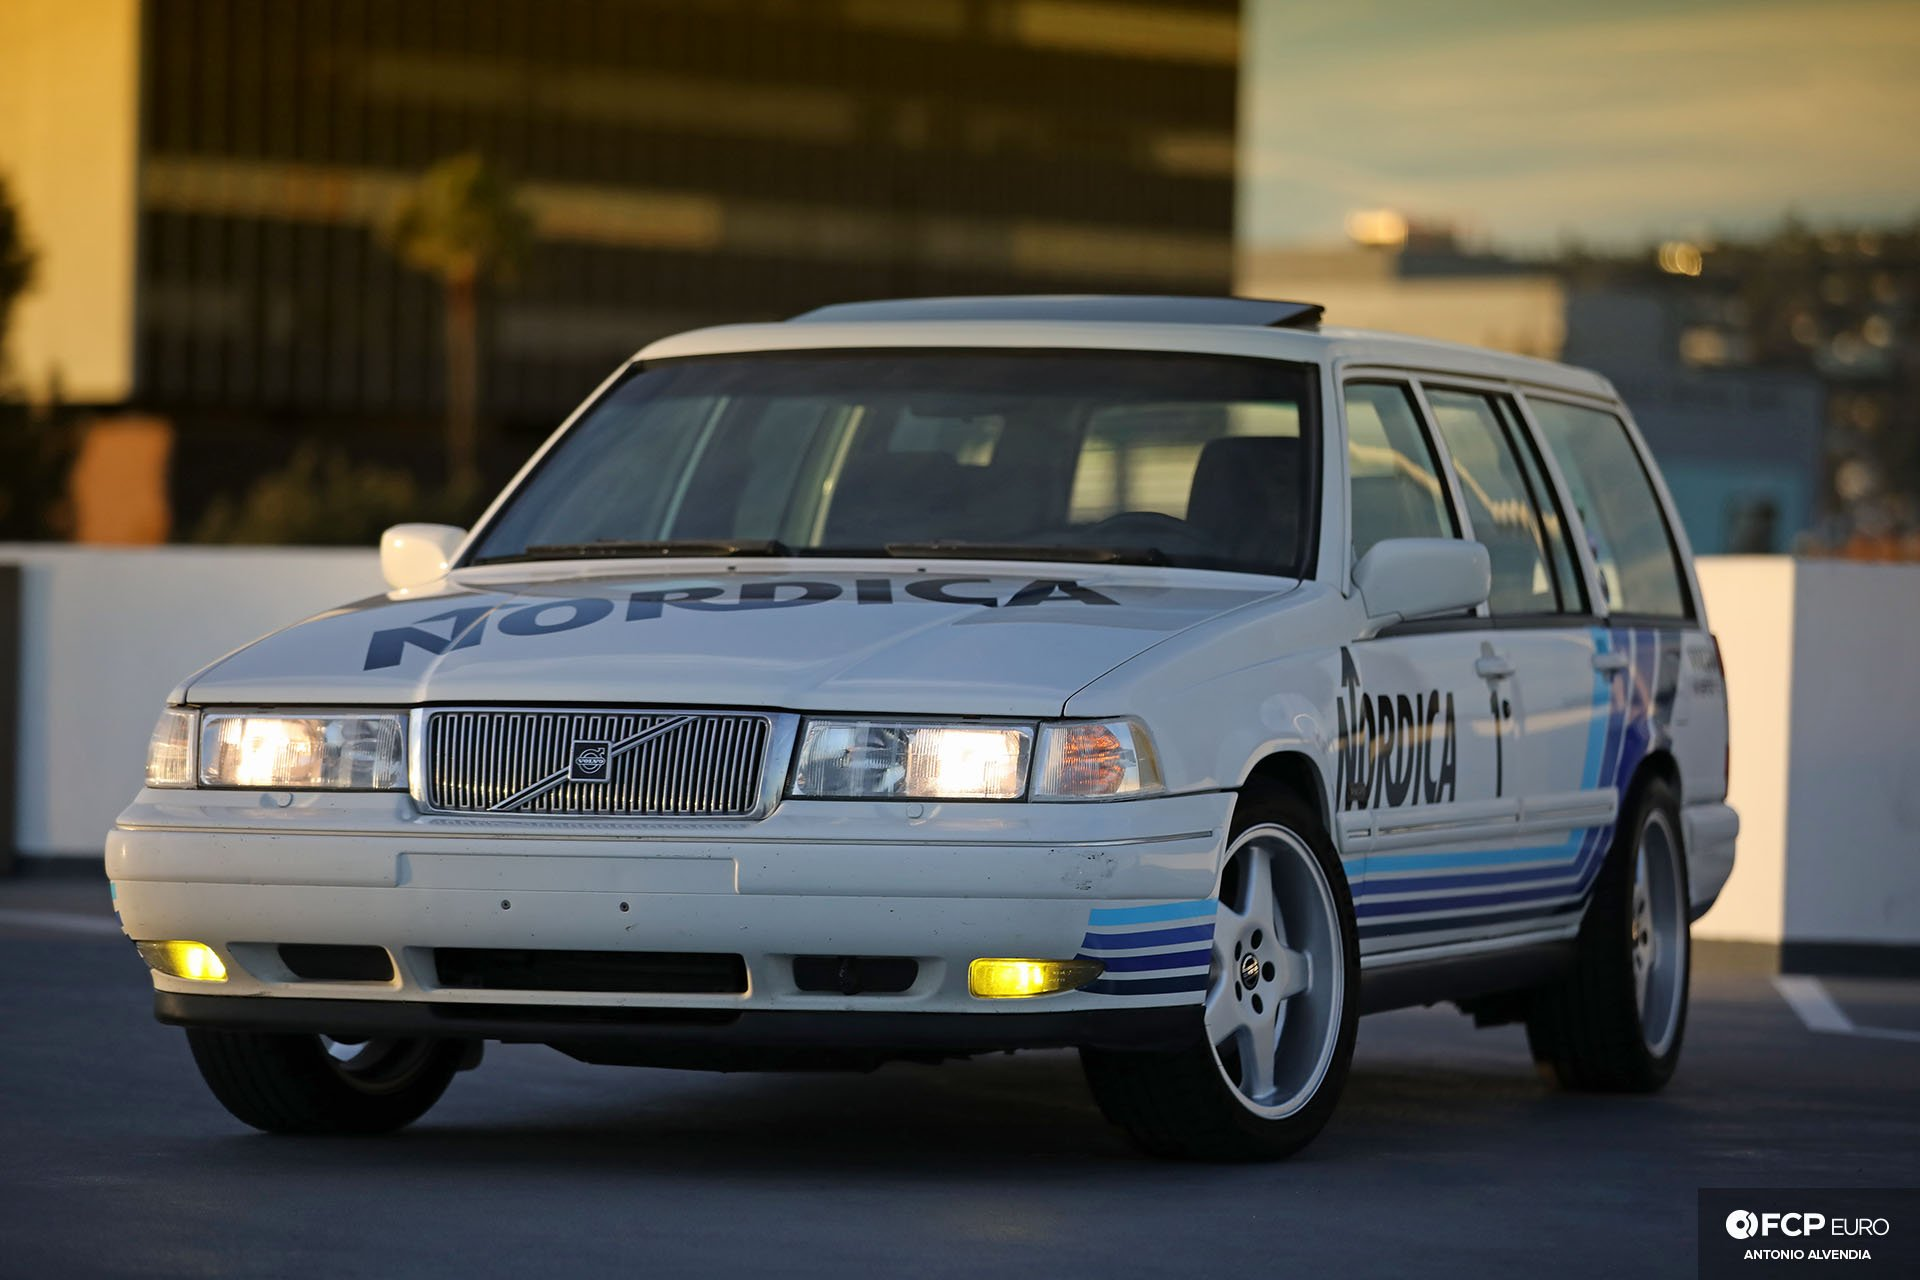 Nordica Volvo V90 Mk II Wagon Head On